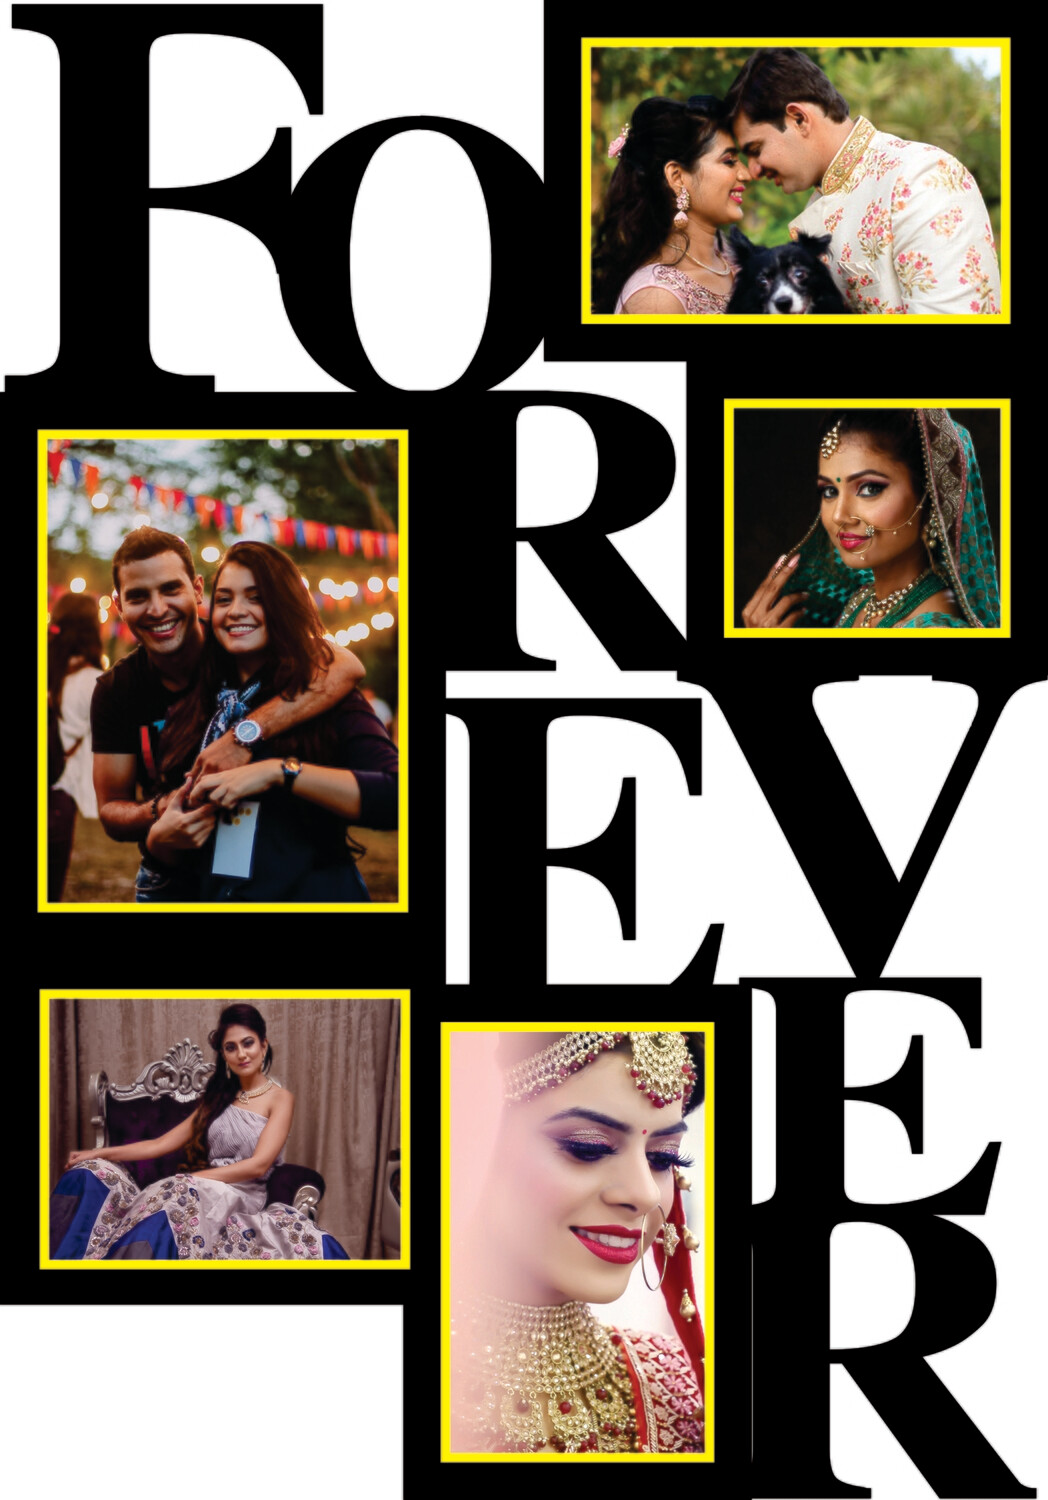 Friends Forever Photo Collage